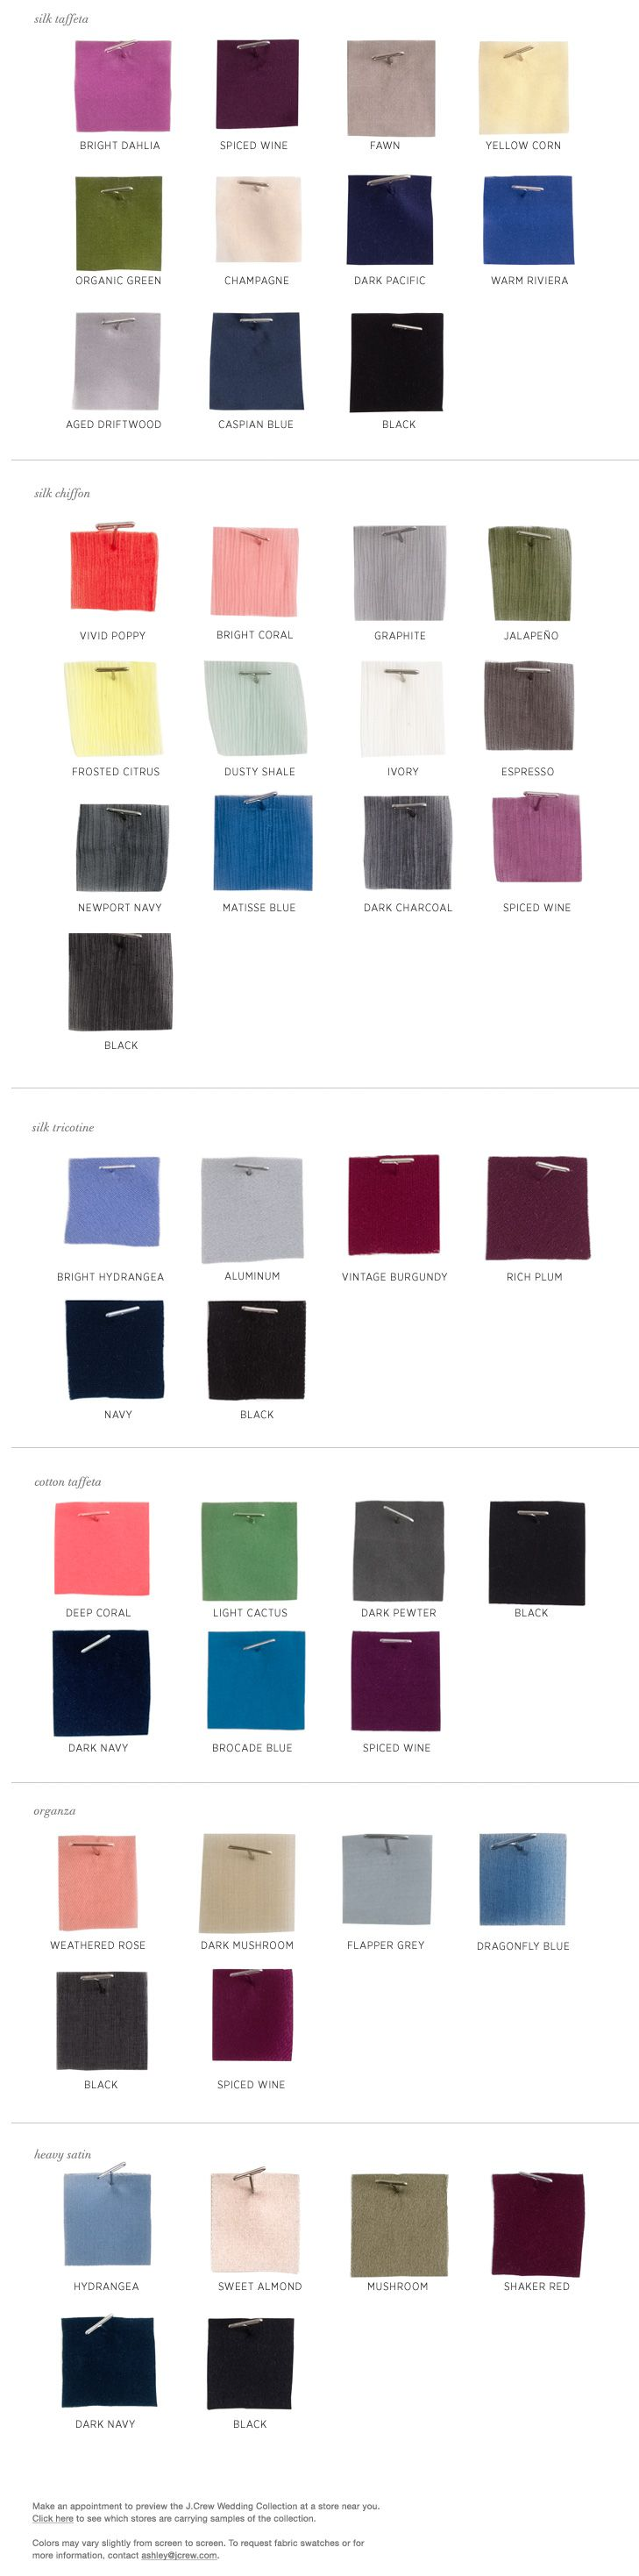 Jew color chart moh pinterest colour chart dusty from varying fabrics to changing seasons use the color swatches to find the perfect bridesmaid dress colors for your big day ombrellifo Image collections